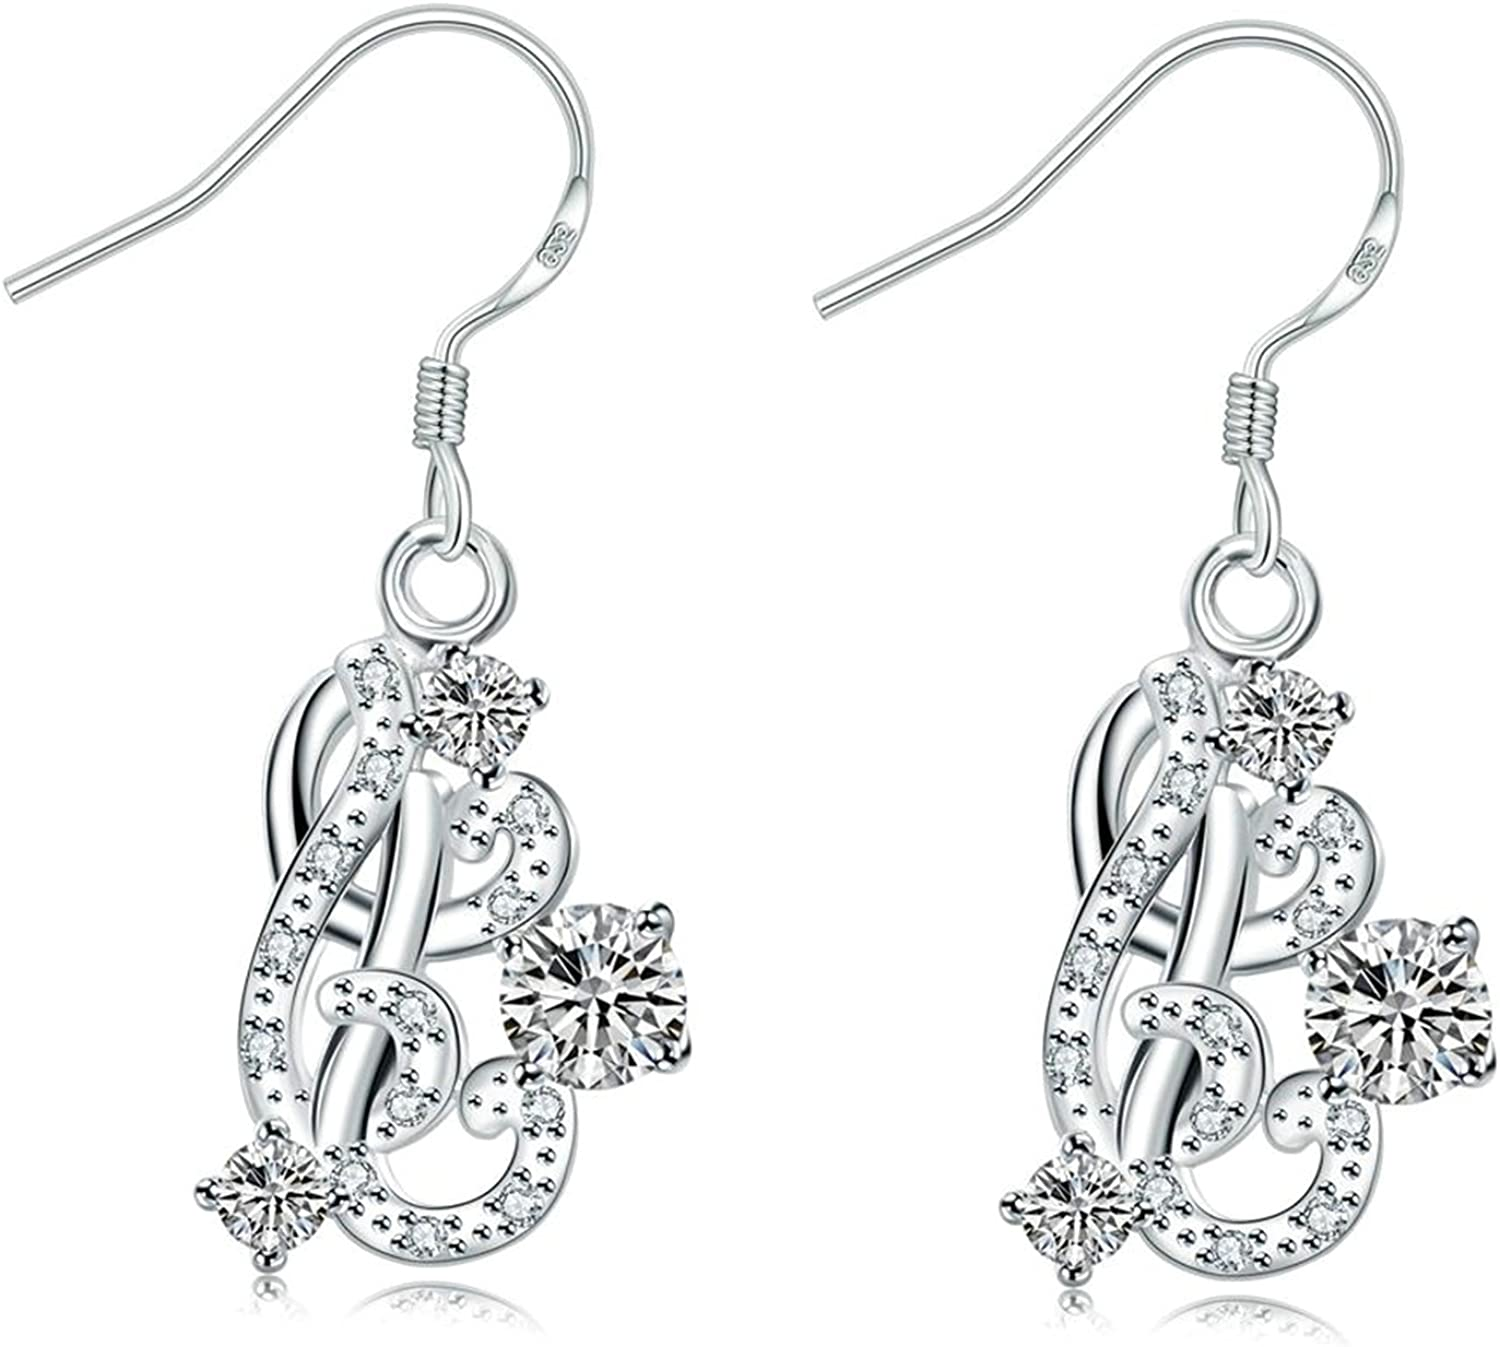 Gnzoe Fashion Jewelry 18K Silver Plated Drop Earrings Fishhook Tree Branch Round Crystal Eco Friendly